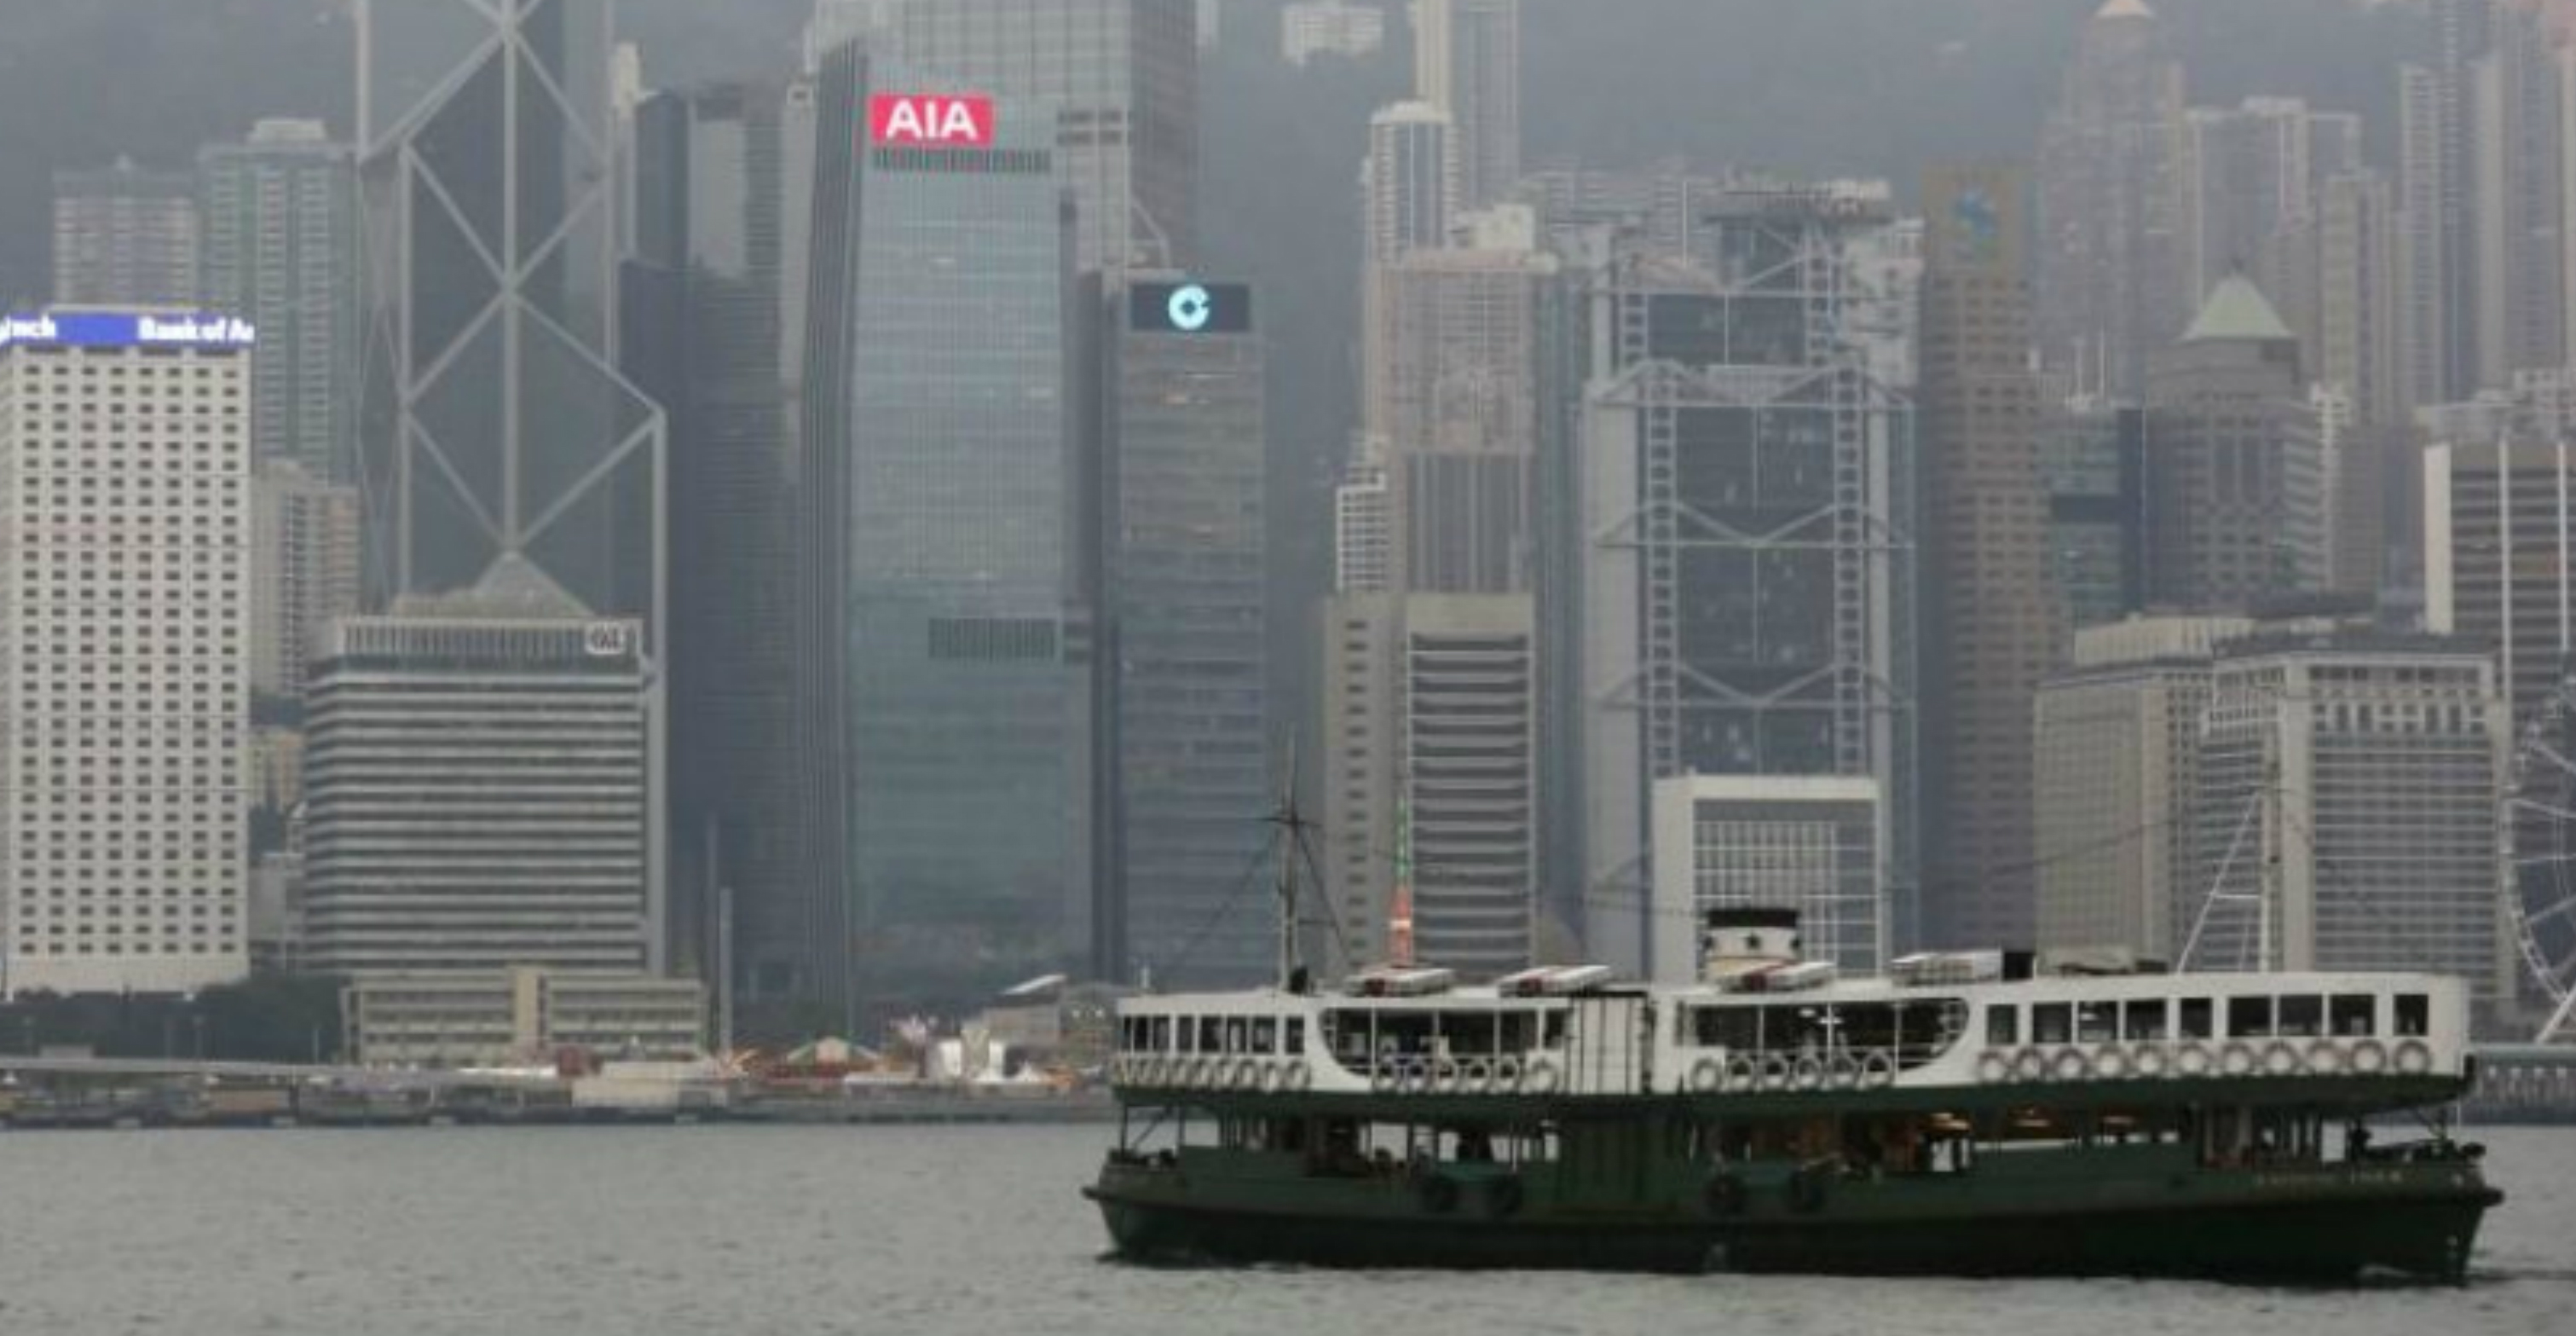 The government has earmarked HK$350 million in the budget to launch a pilot scheme for electric ferries. Photo: Reuters